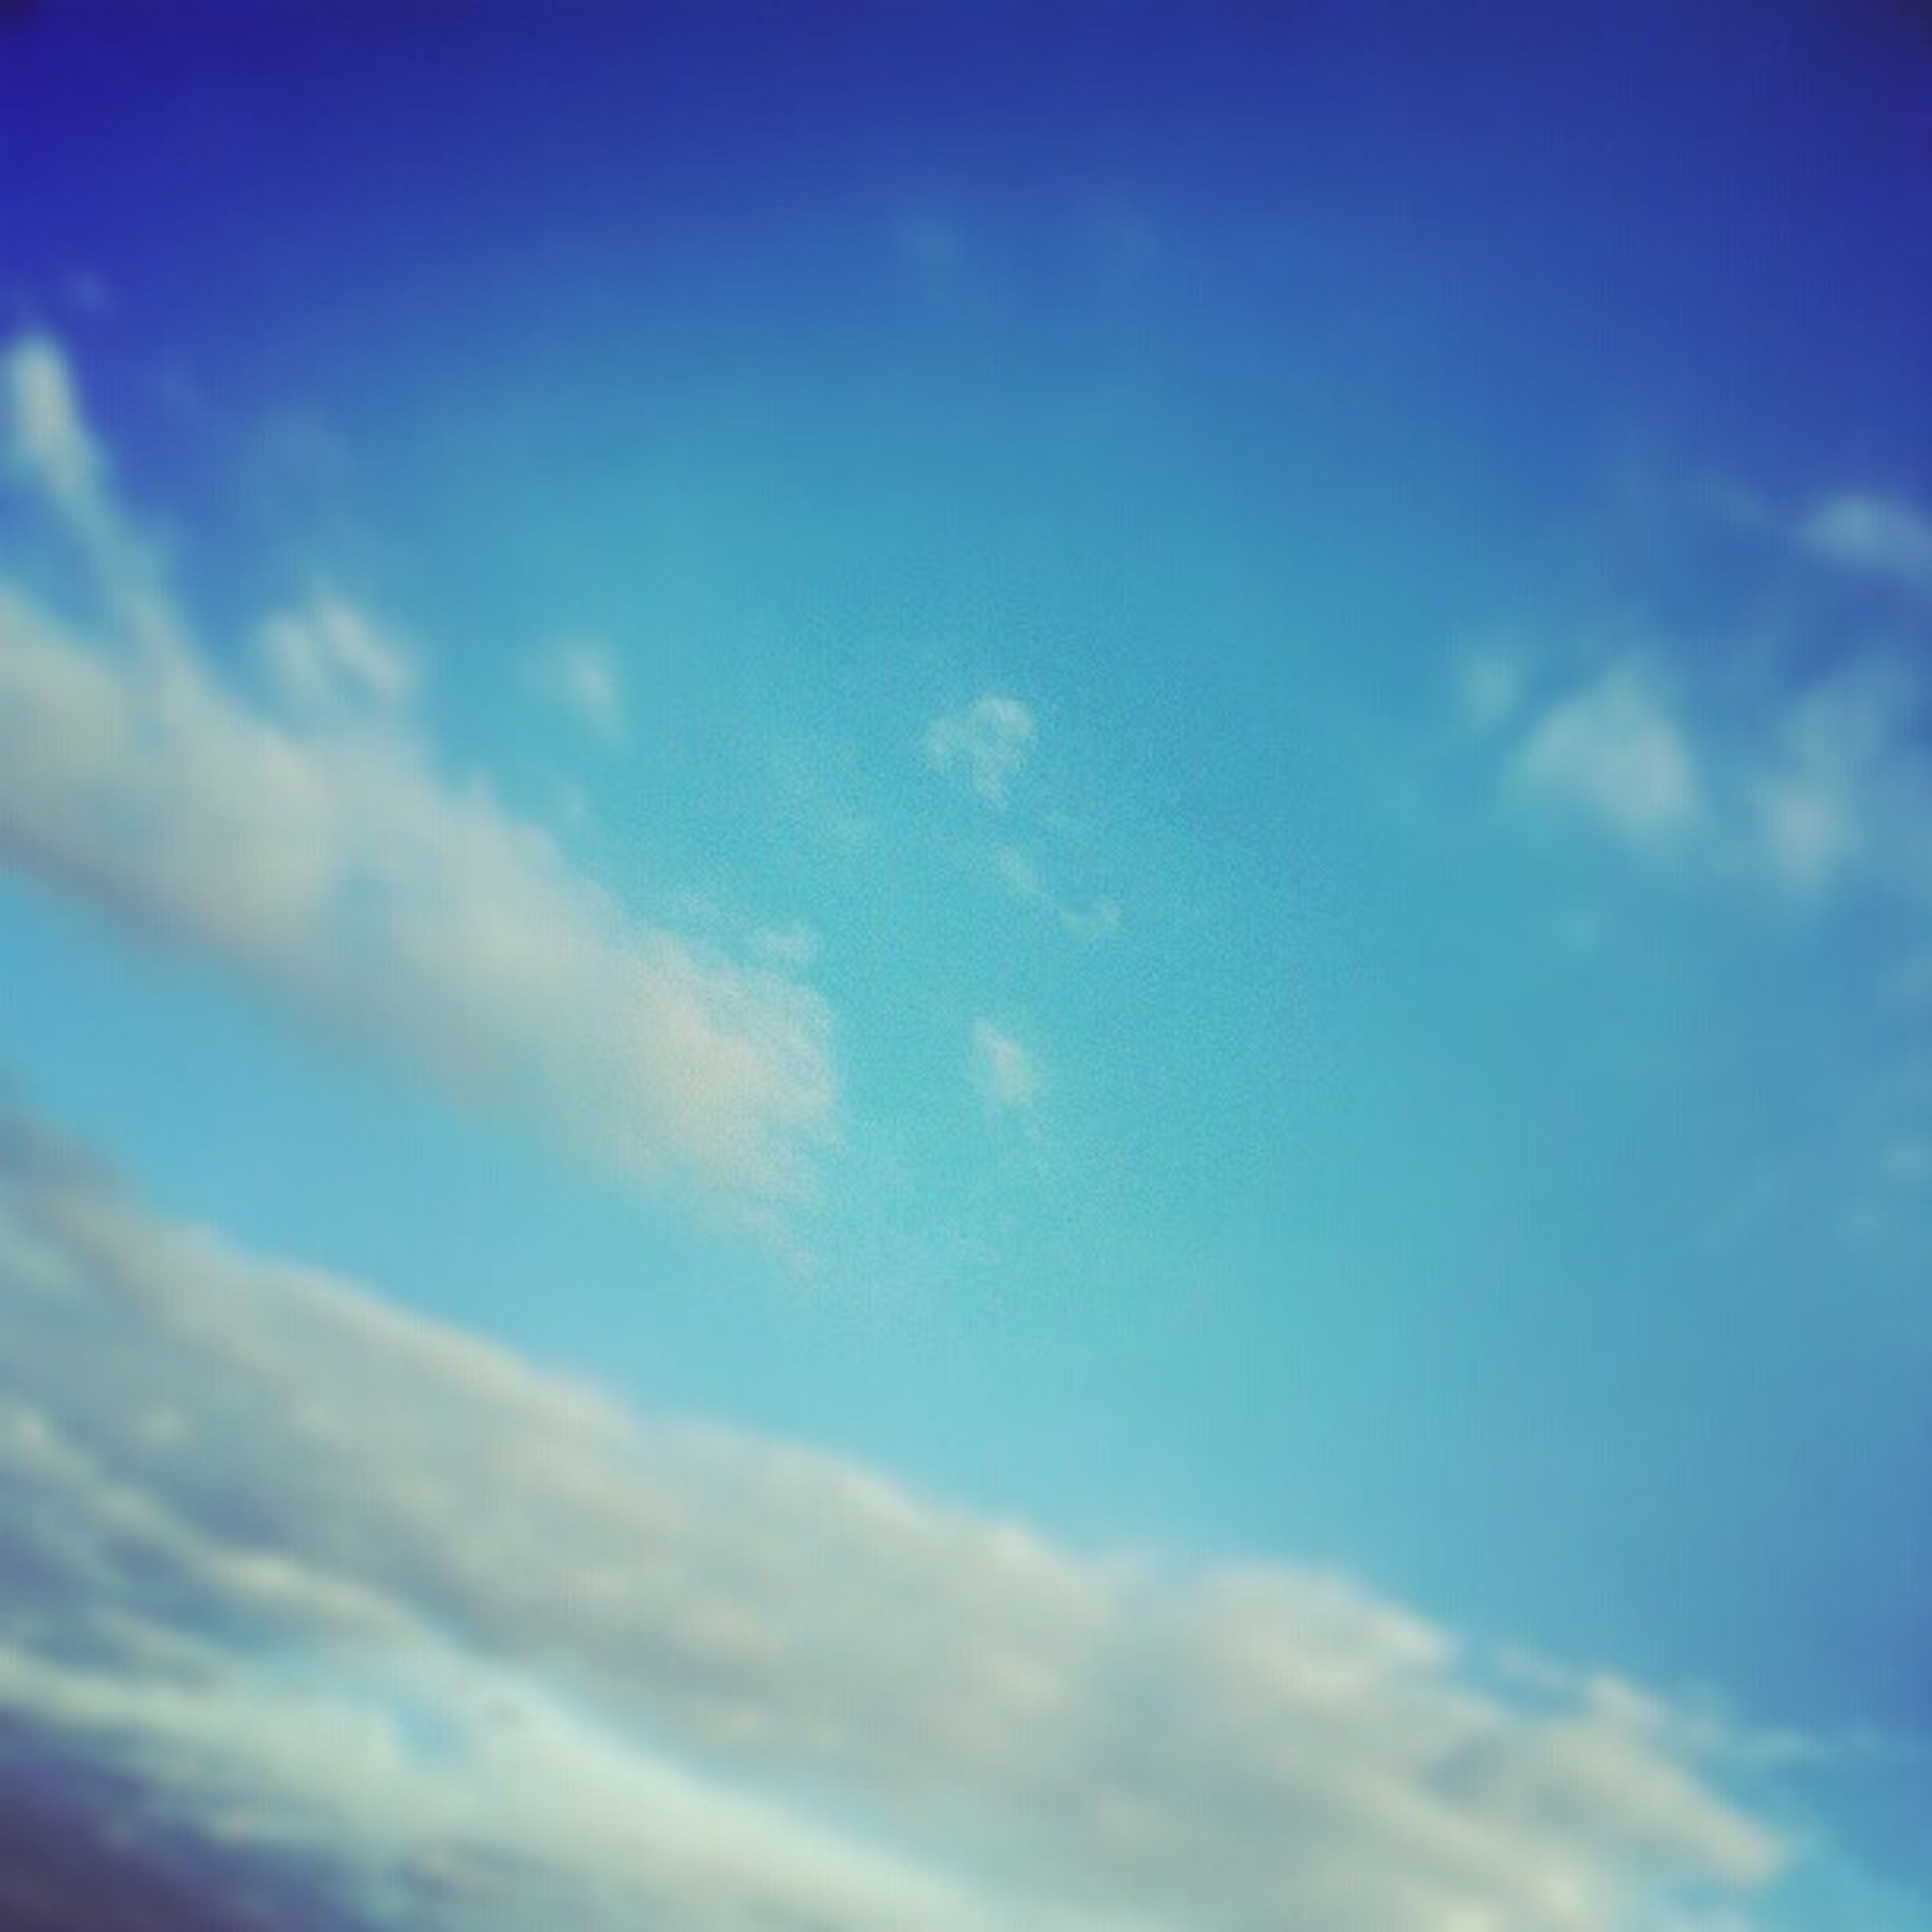 blue, sky, cloud - sky, low angle view, beauty in nature, scenics, tranquility, nature, tranquil scene, sky only, cloud, backgrounds, idyllic, cloudscape, outdoors, no people, cloudy, full frame, day, copy space